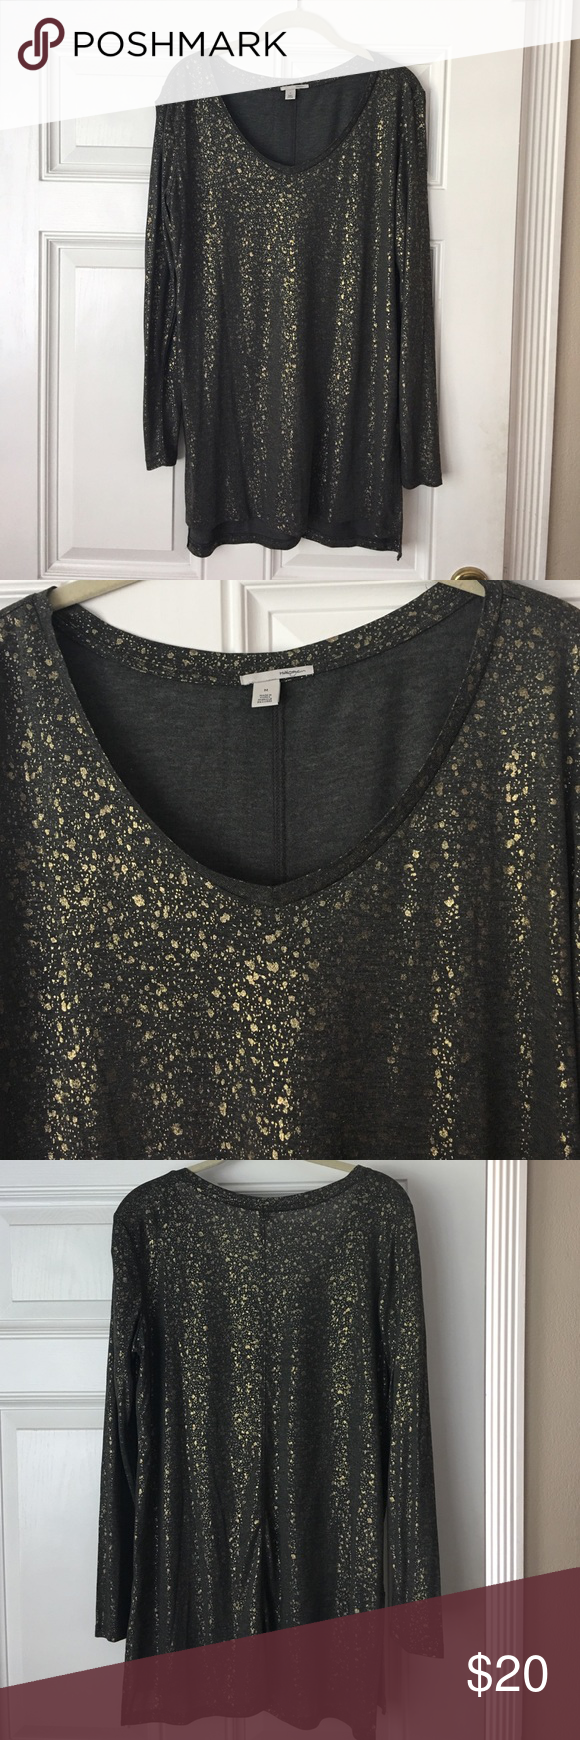 Long sleeve Lightweight Tunic Halogen Long Sleeve Lightweight Tunic in Charcoal Foil from Nordstrom. Only worn once. Excellent shape. Halogen Tops Tunics